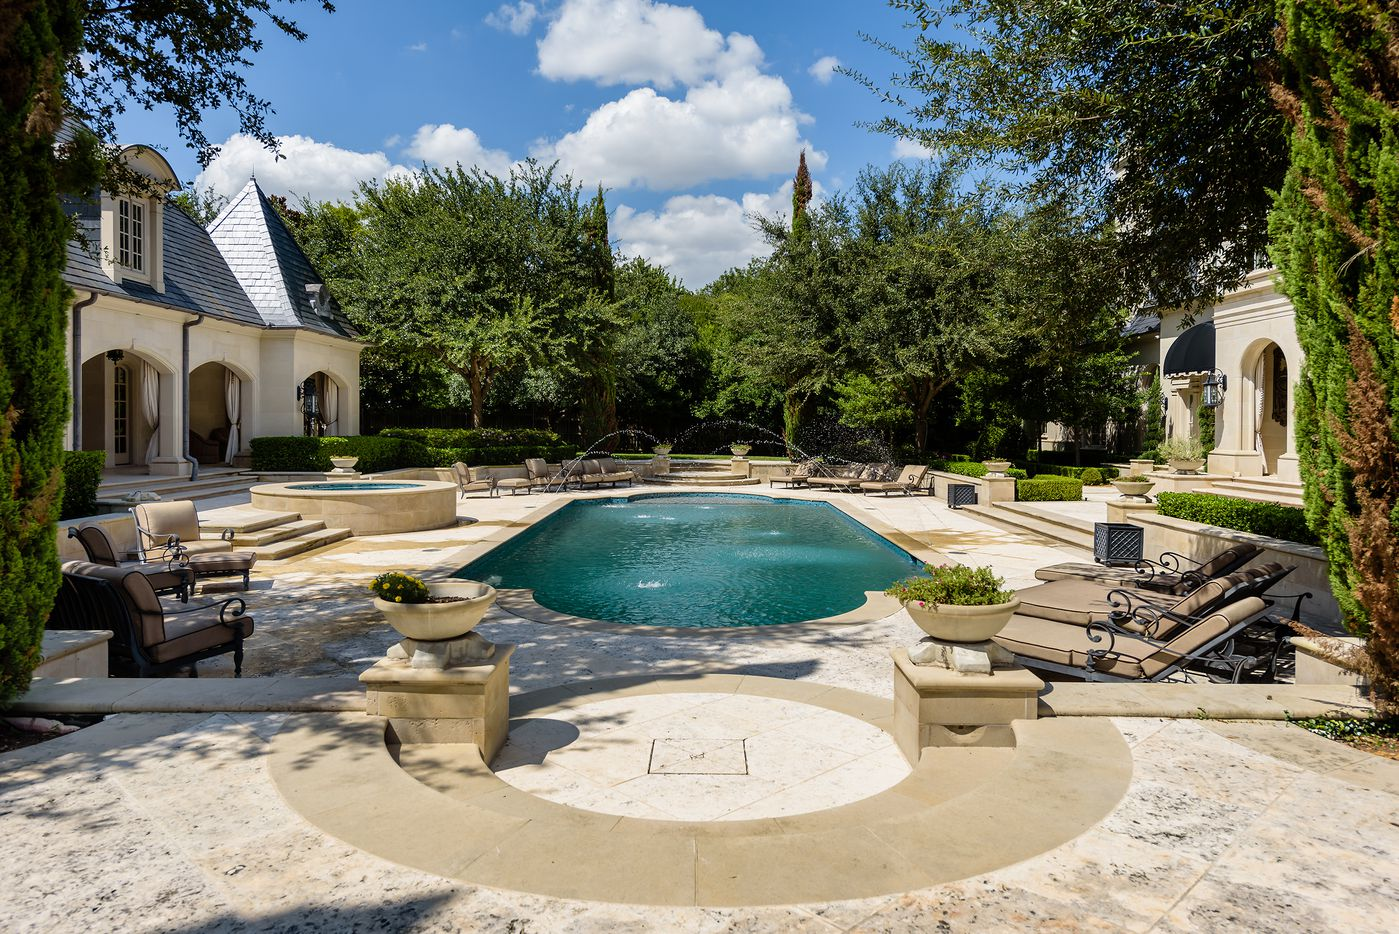 The estate has two movie theaters, swimming pools and tennis courts.